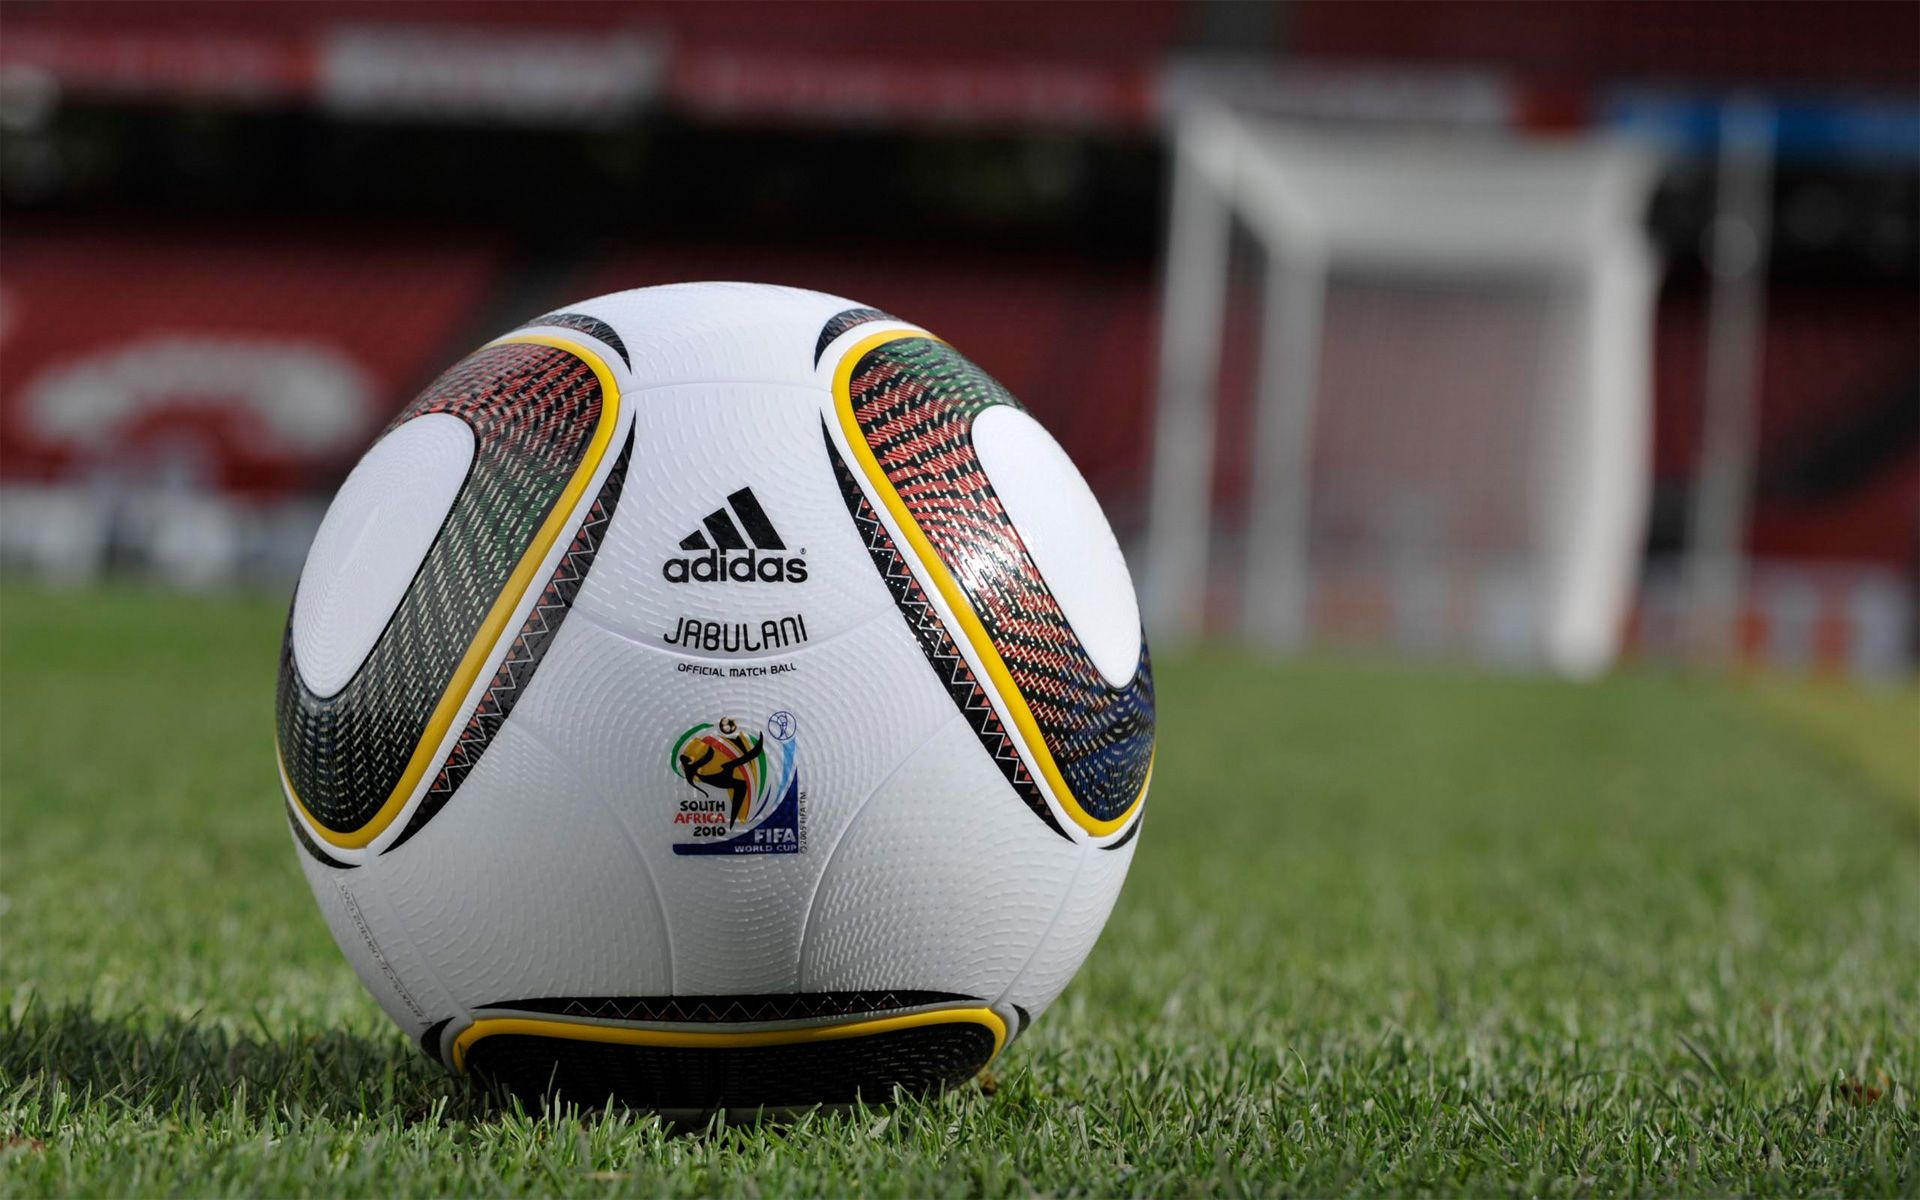 The FIFA 2010 World Cup ball.